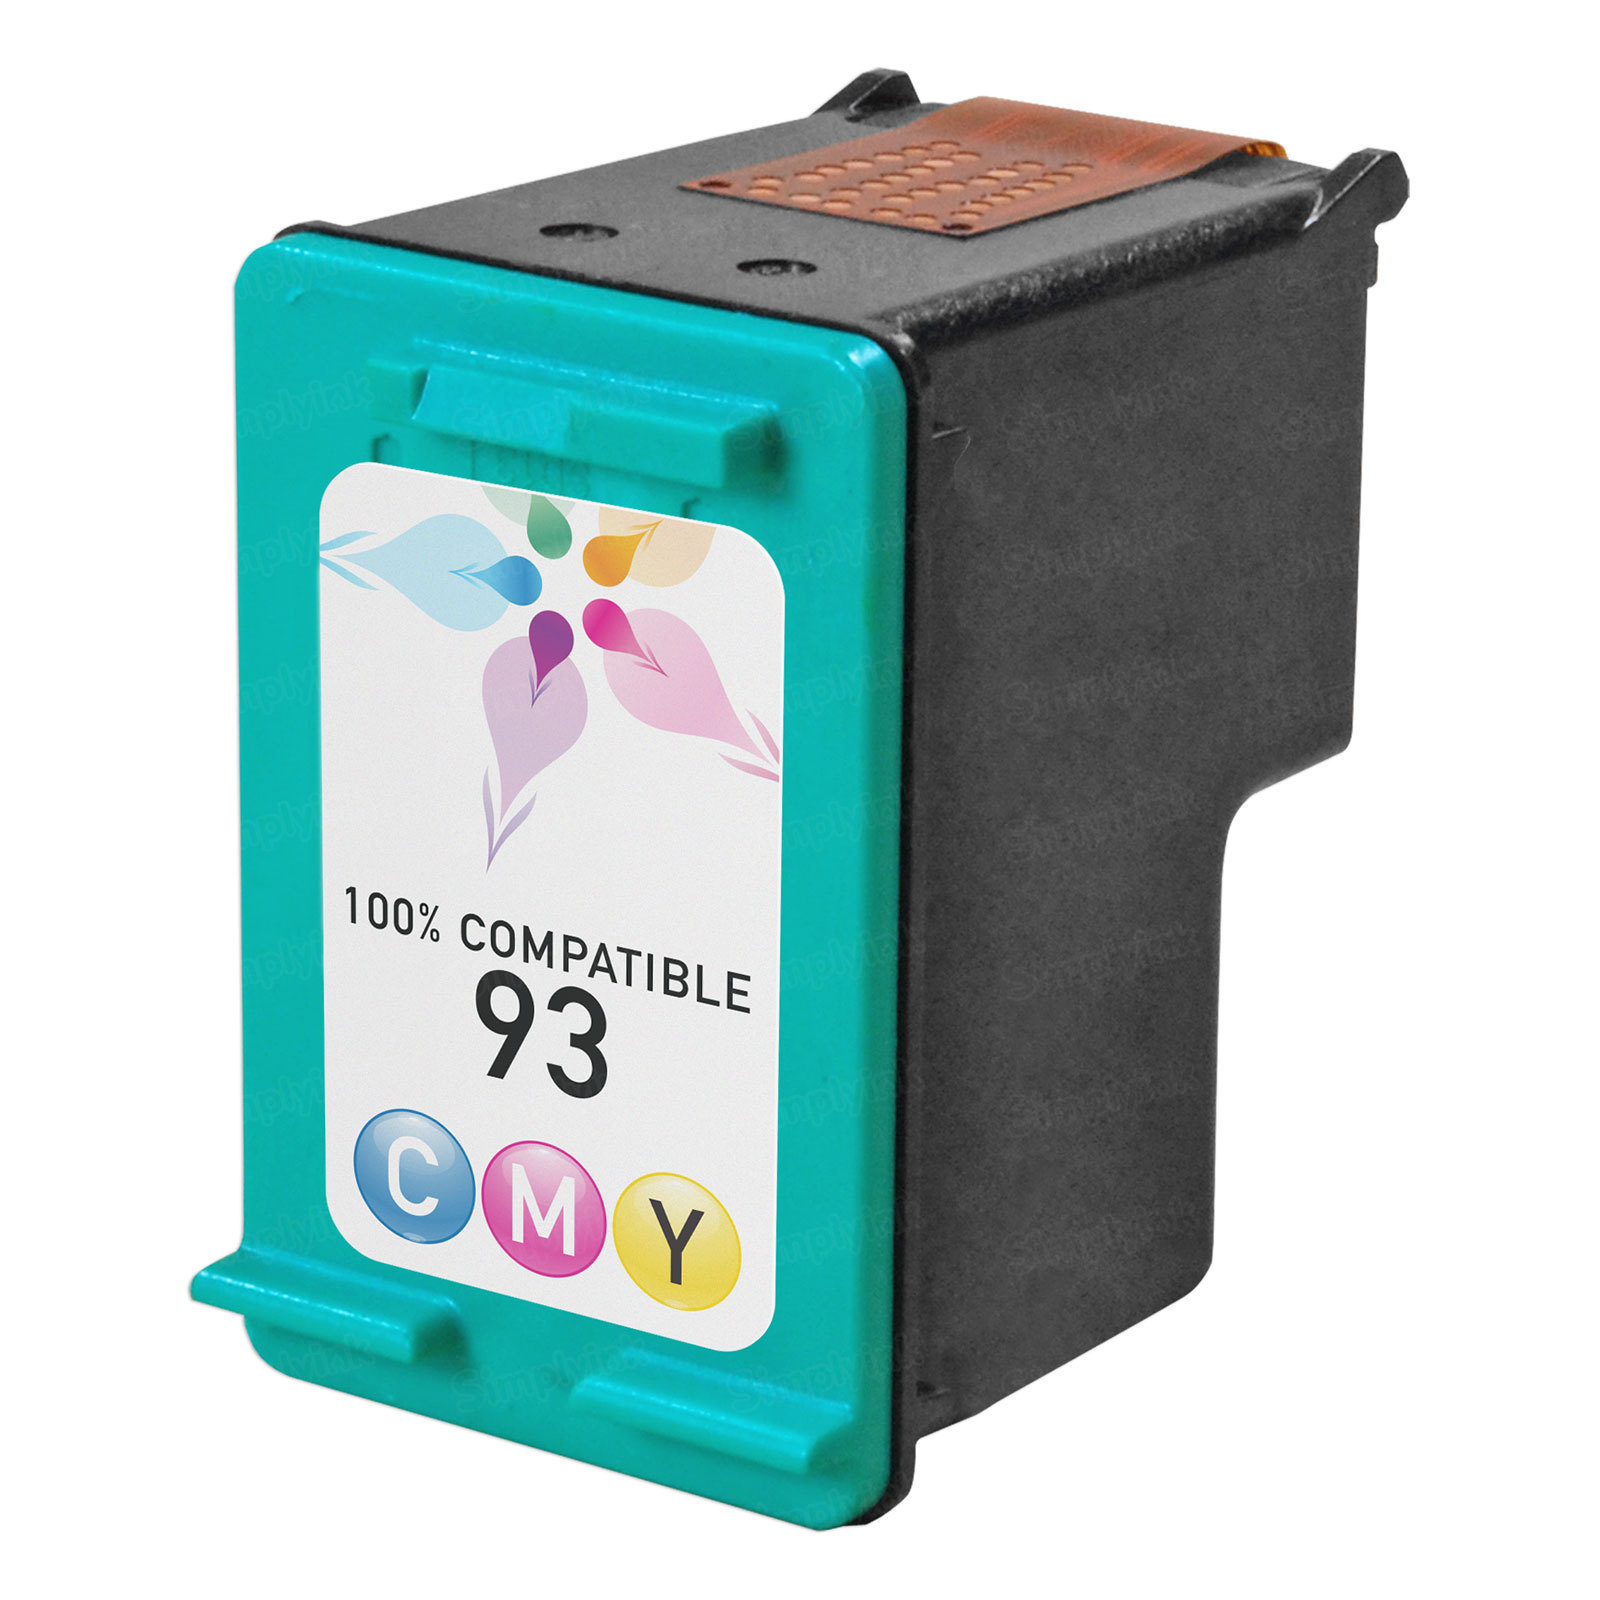 Remanufactured Replacement Tri-Color Ink for HP 93